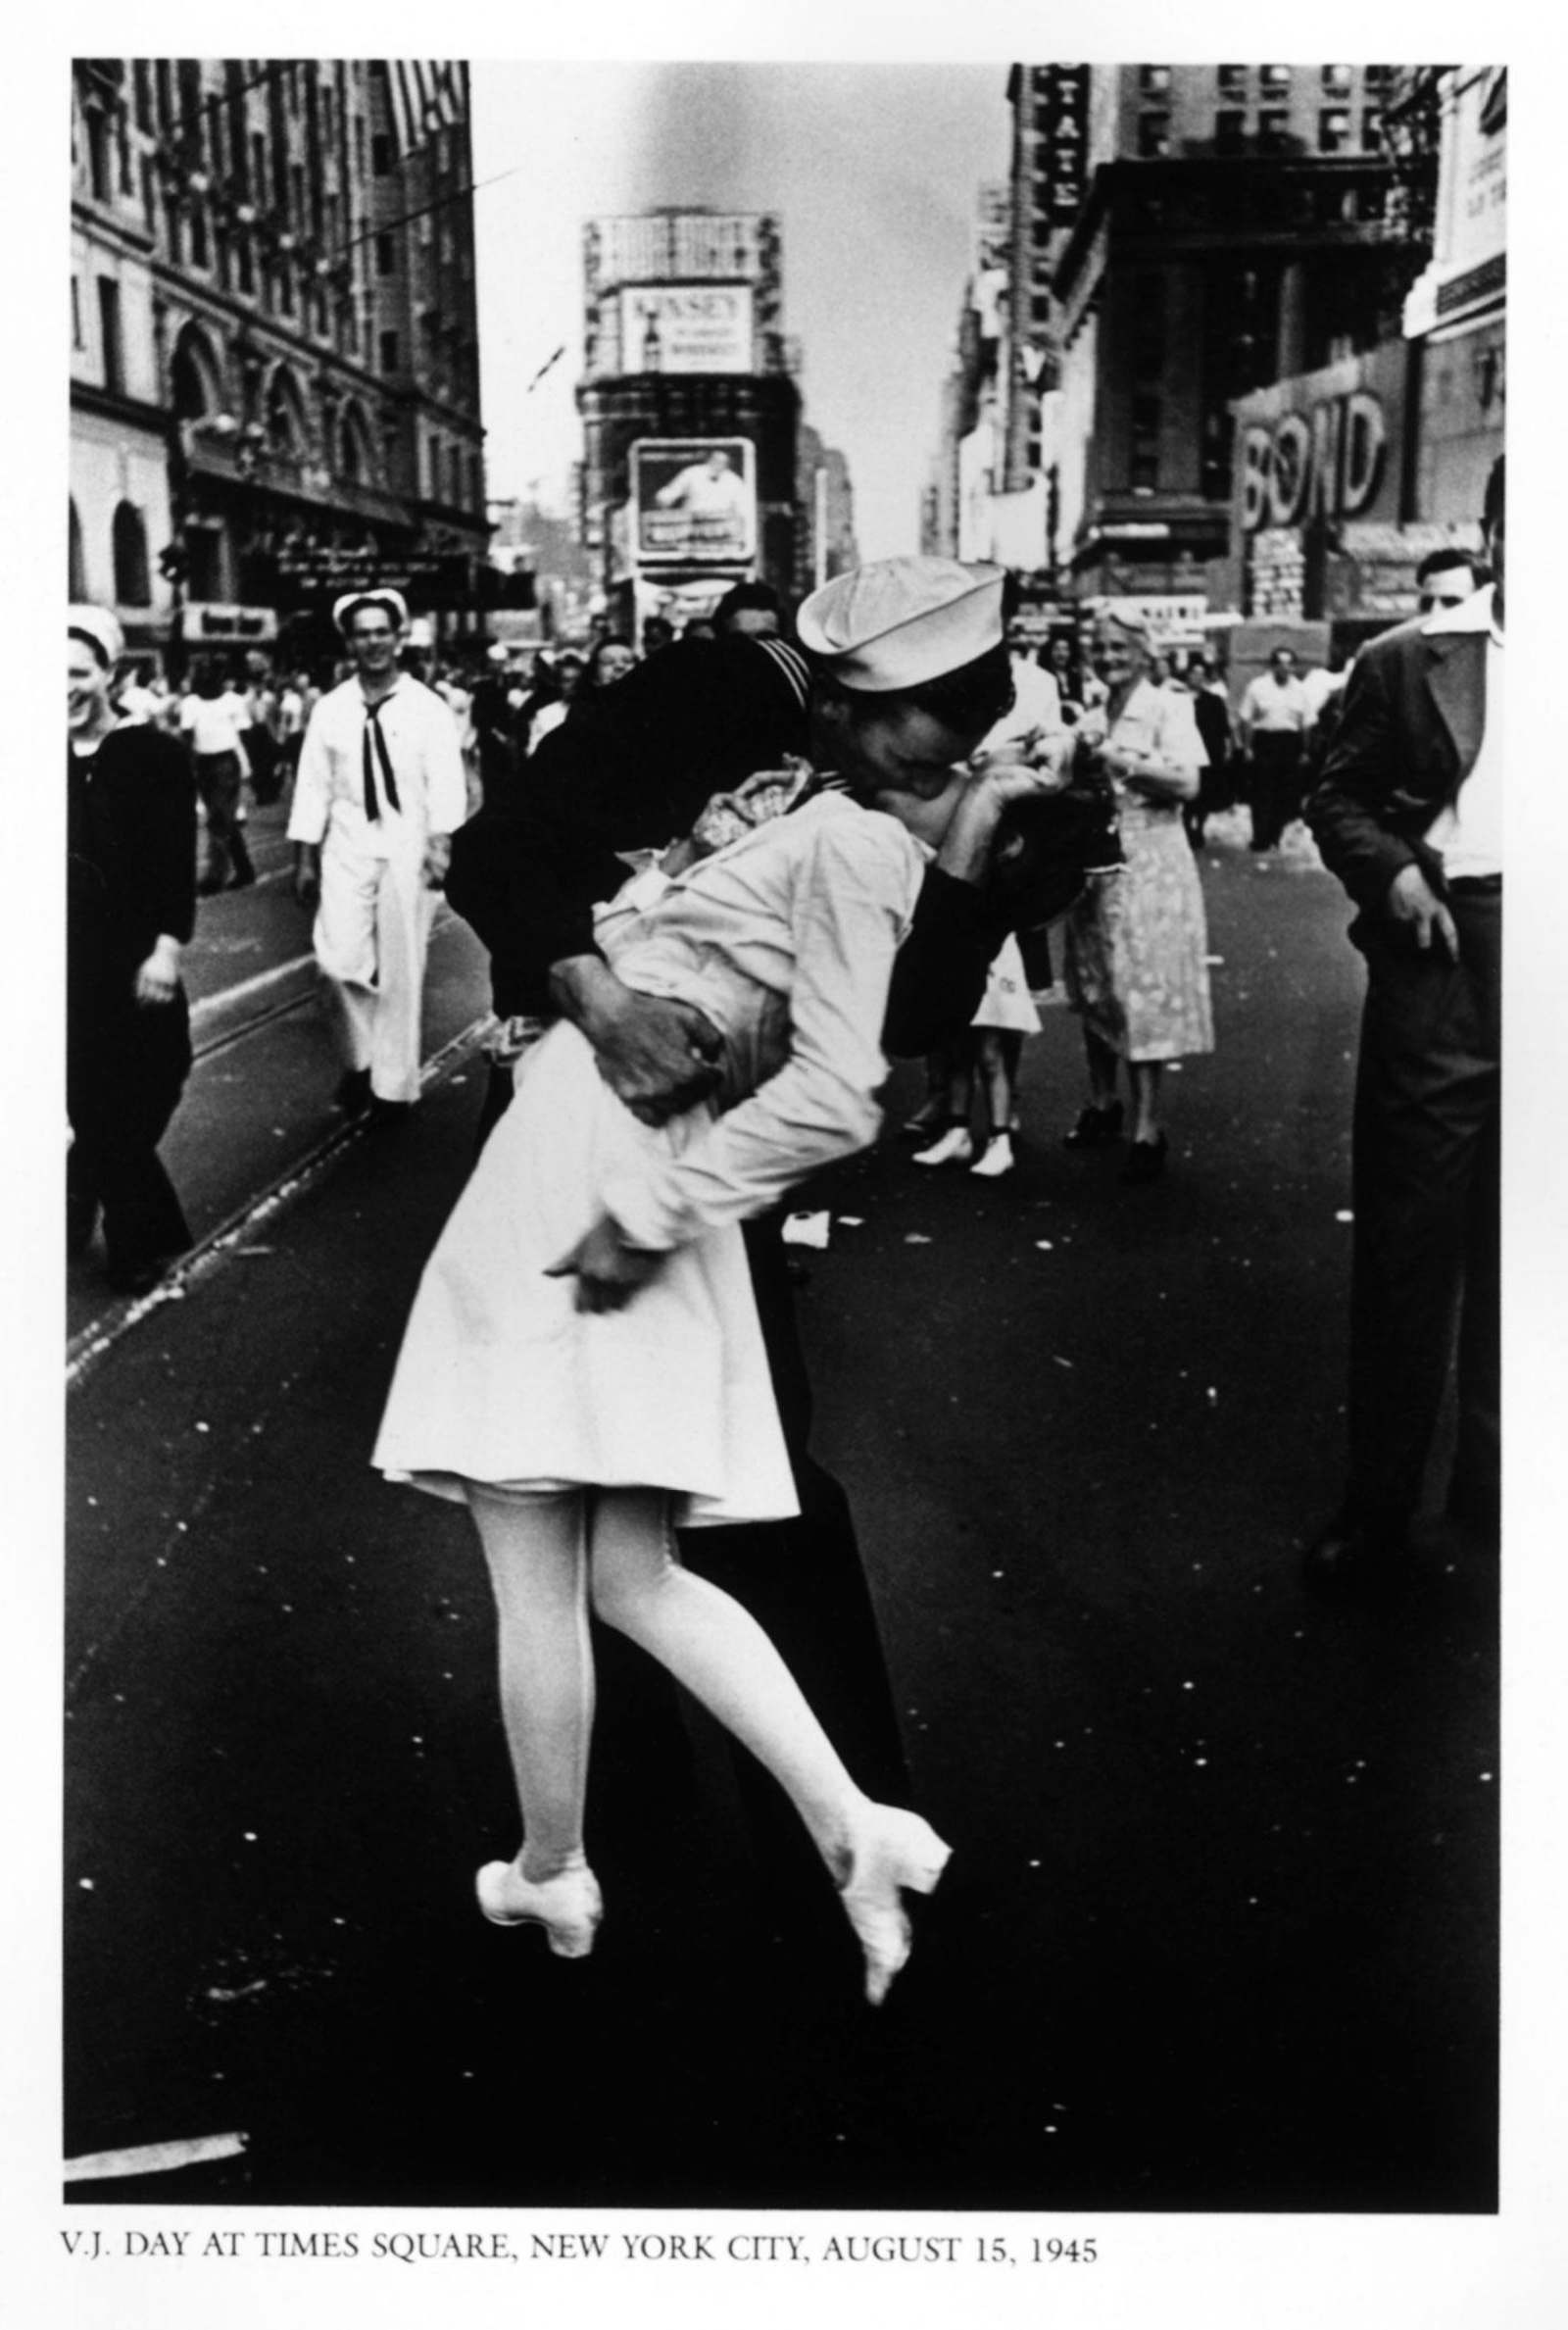 The photo of a sailor and a woman kissing in Times Square to celebrate the end of WWII became an iconic image.